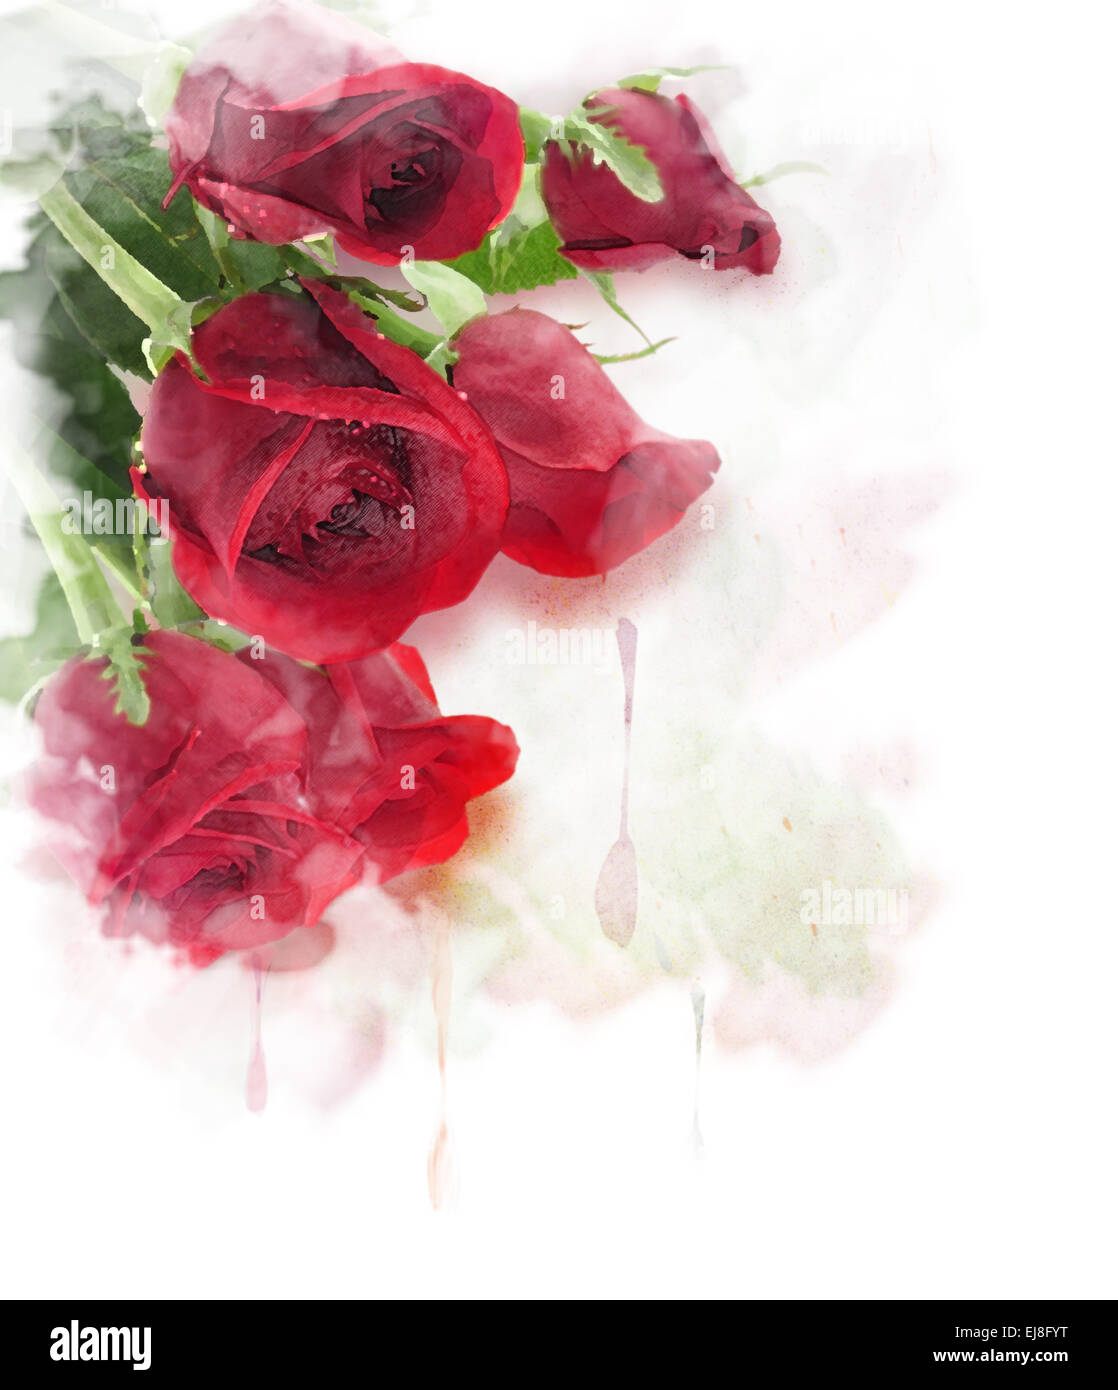 Red Roses Digital Painting - Stock Image